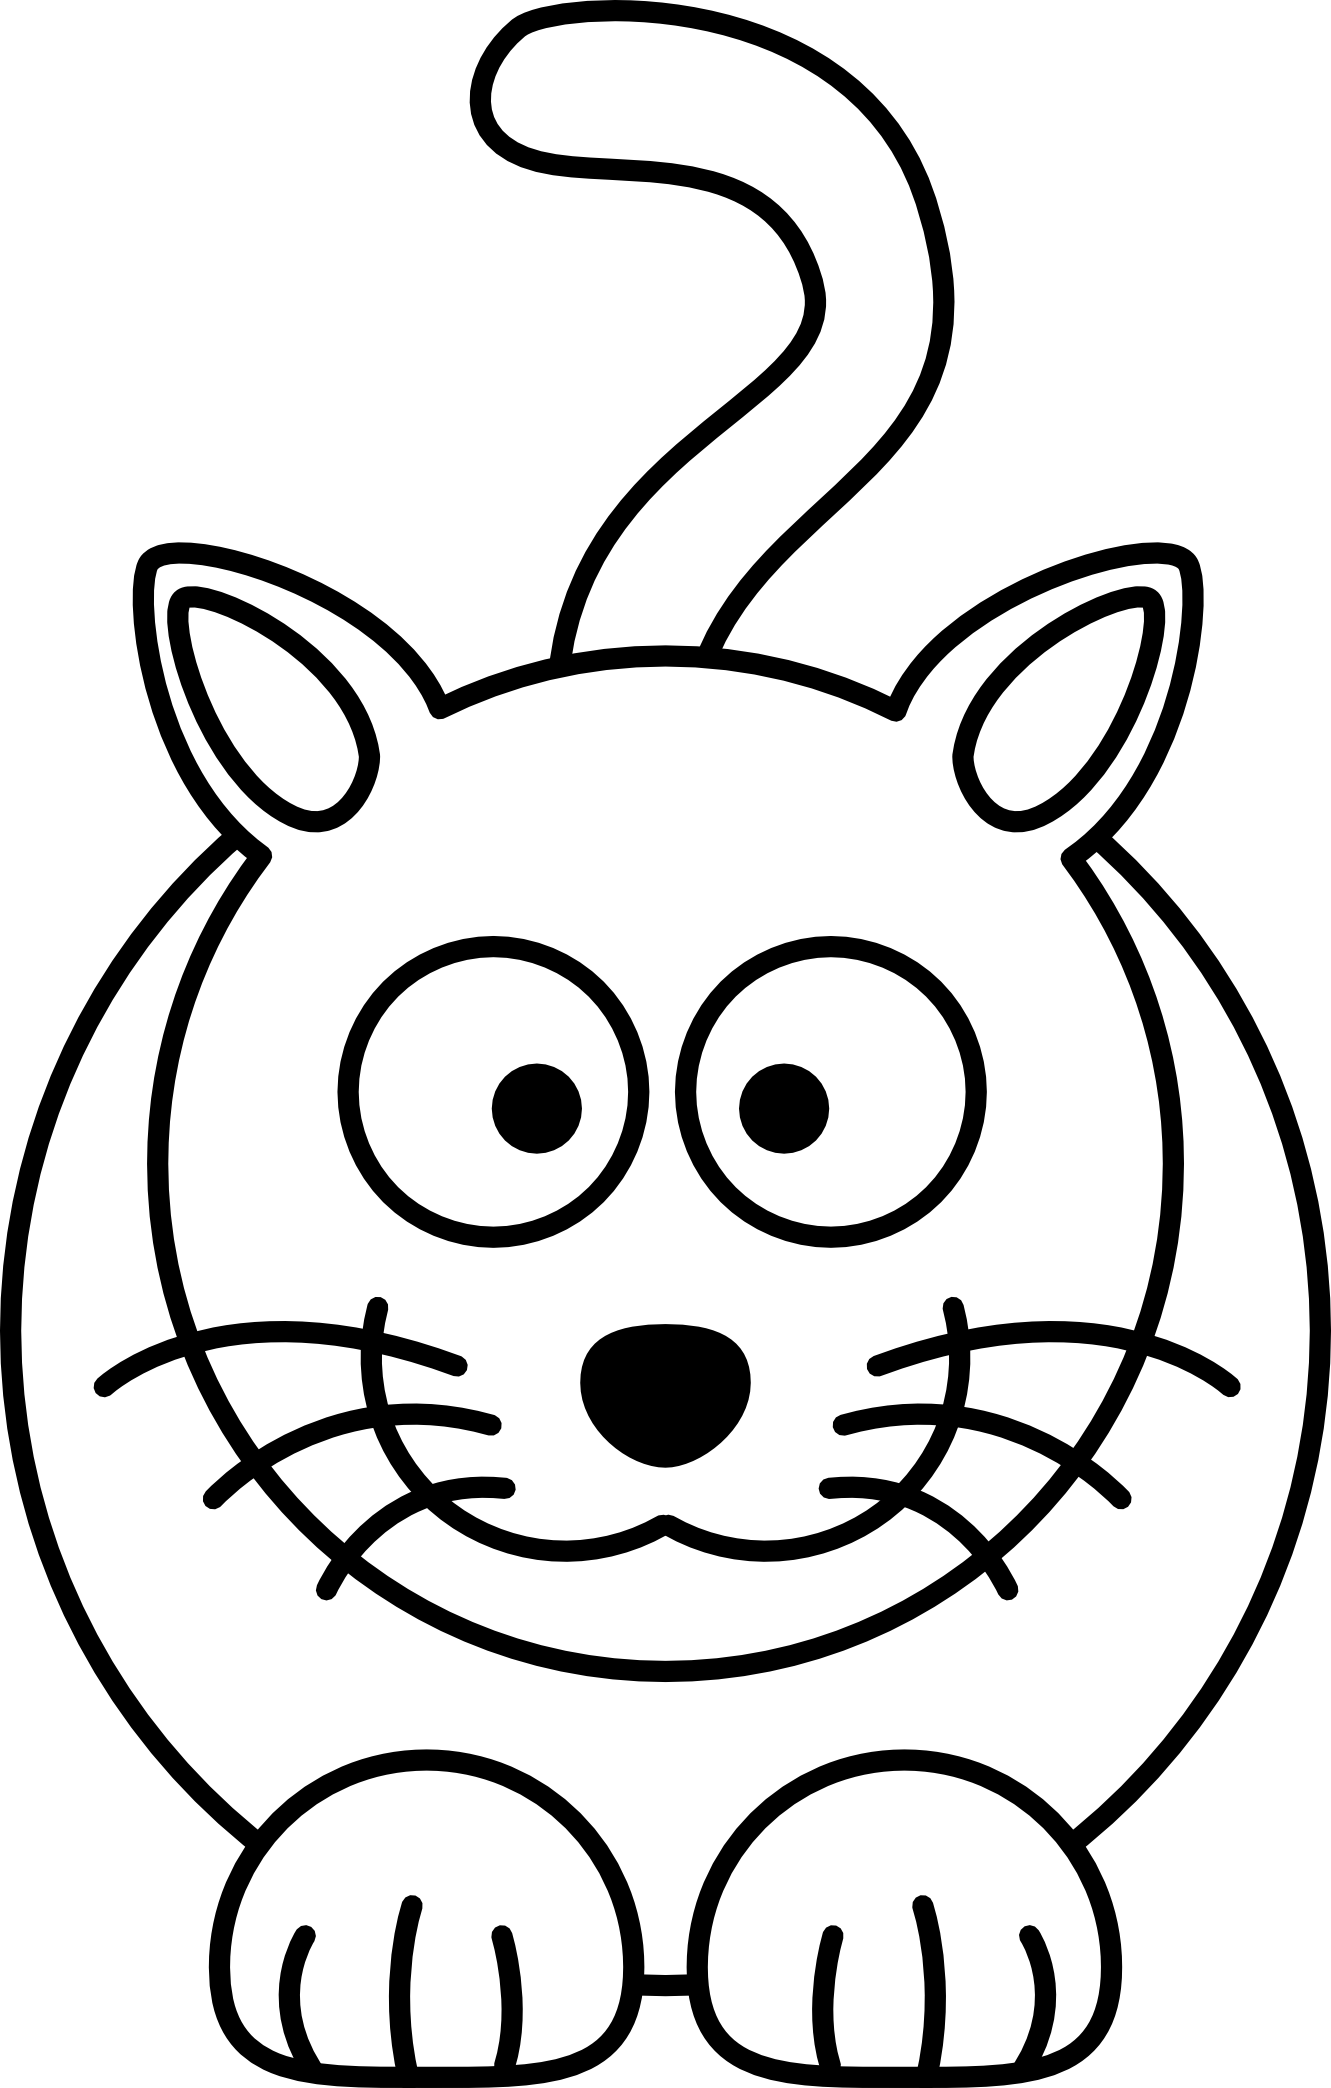 top cat cartoon coloring pages - photo#32